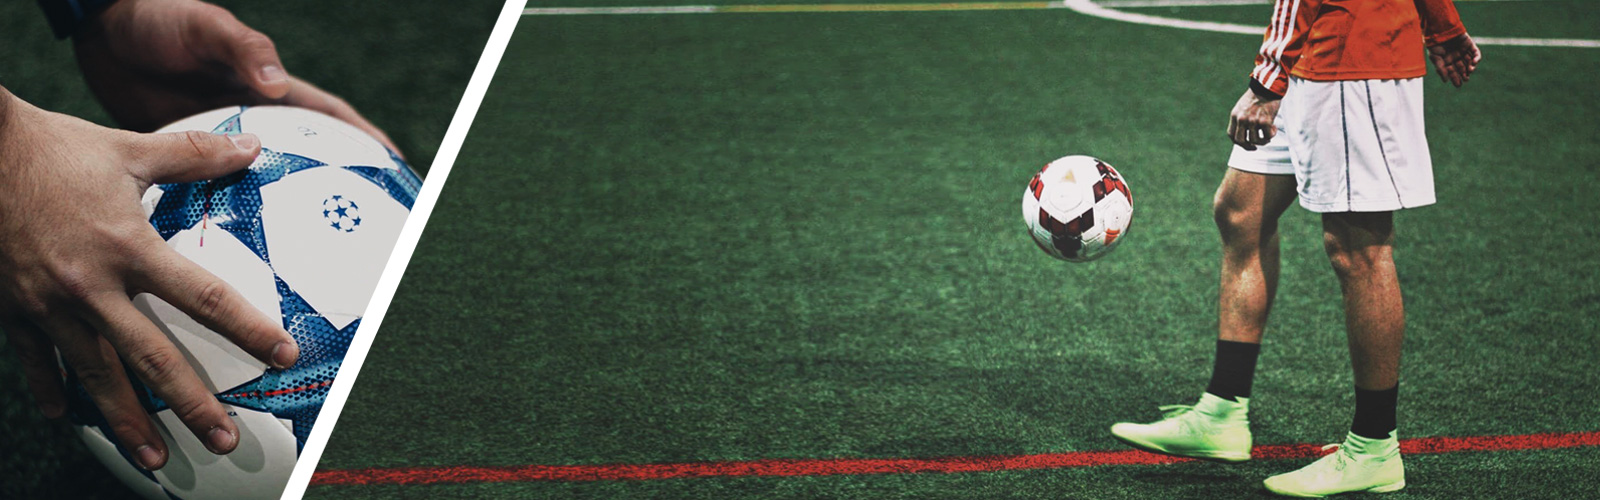 Fort Worth Indoor Soccer League | Game On FW